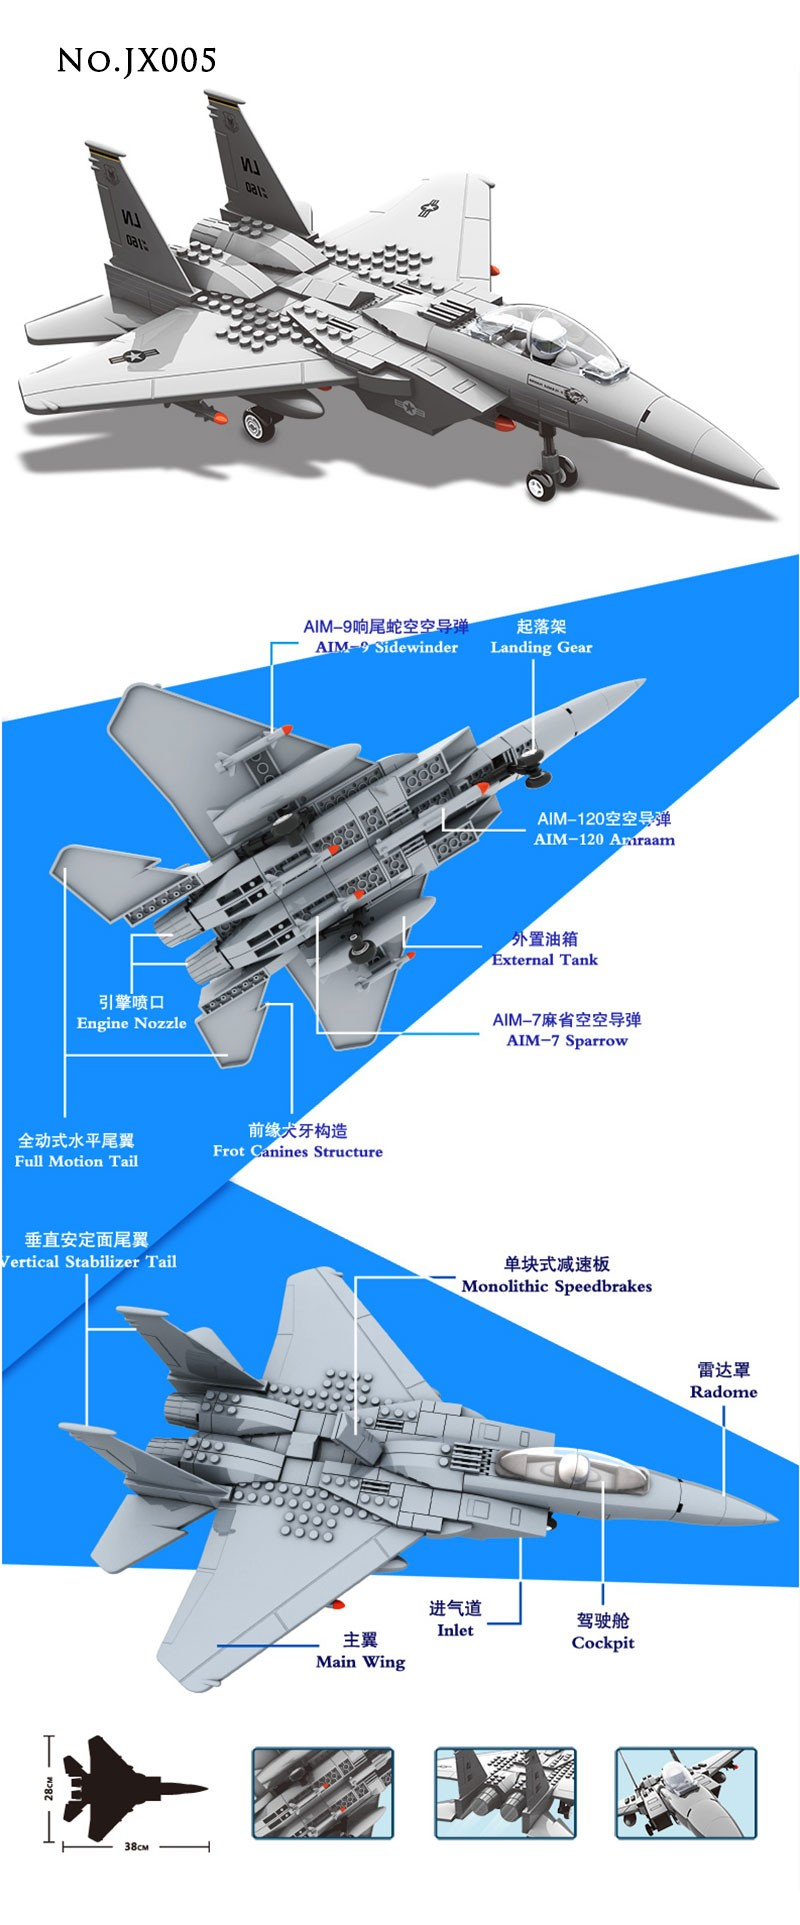 Wange Building Blocks Military F15 Fighter J-15 V-22 Osprey Tiltrotor Aircraft Helicopter Model Building Kits Toys For Children 5